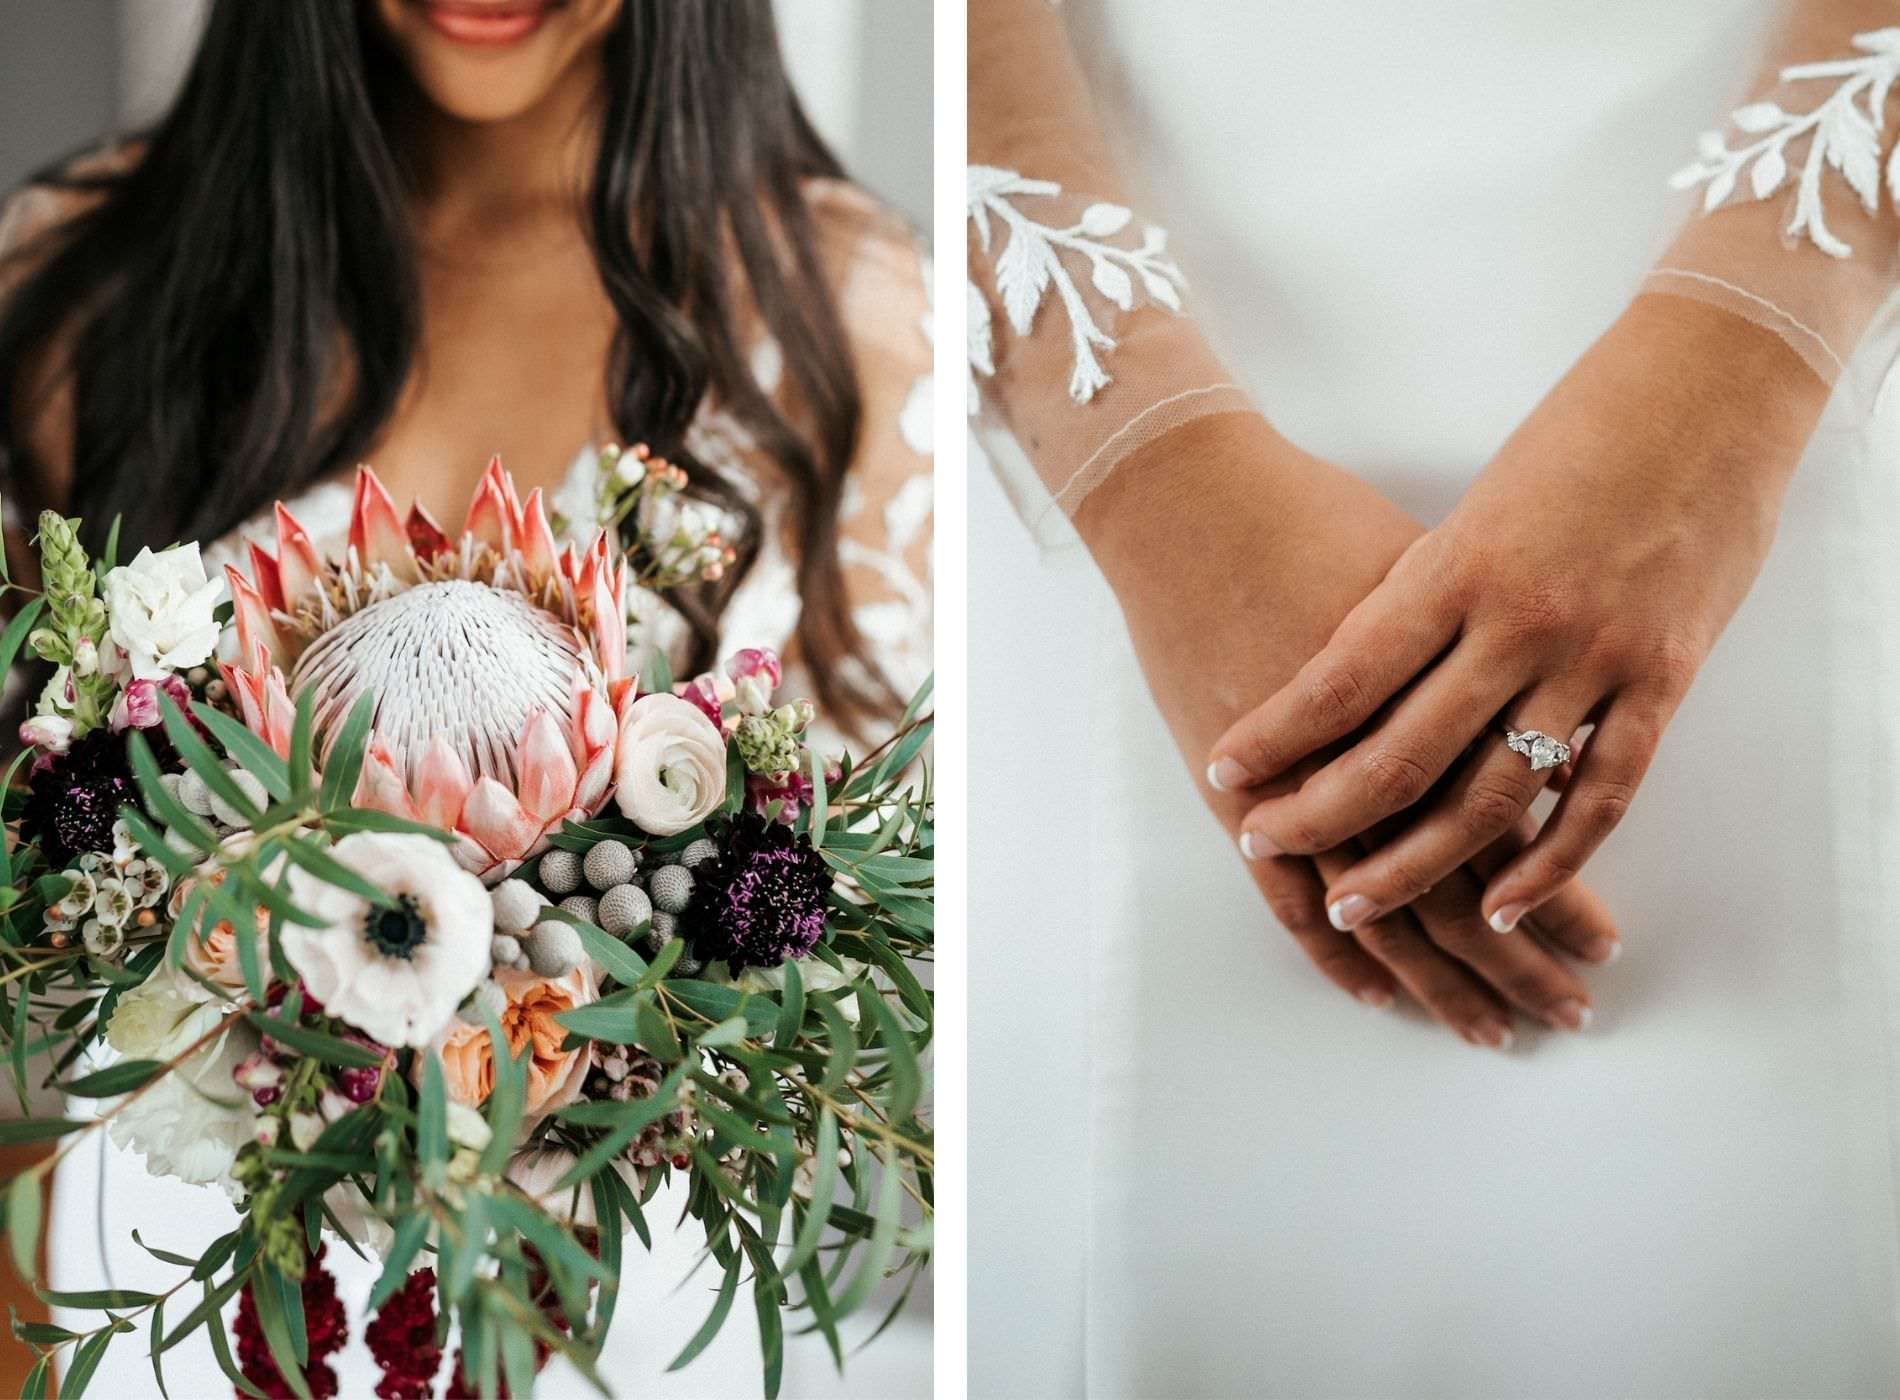 Romantic, Modern Tropical Florida Bridal Details, Vibrant Bouquet with King Protea, Dark Purple, Pink, White, Wine and Ivory Florals with Greenery, Bride Wearing BHLDN Wedding Dress | Tampa Bay Wedding Florist Posies Flower Truck